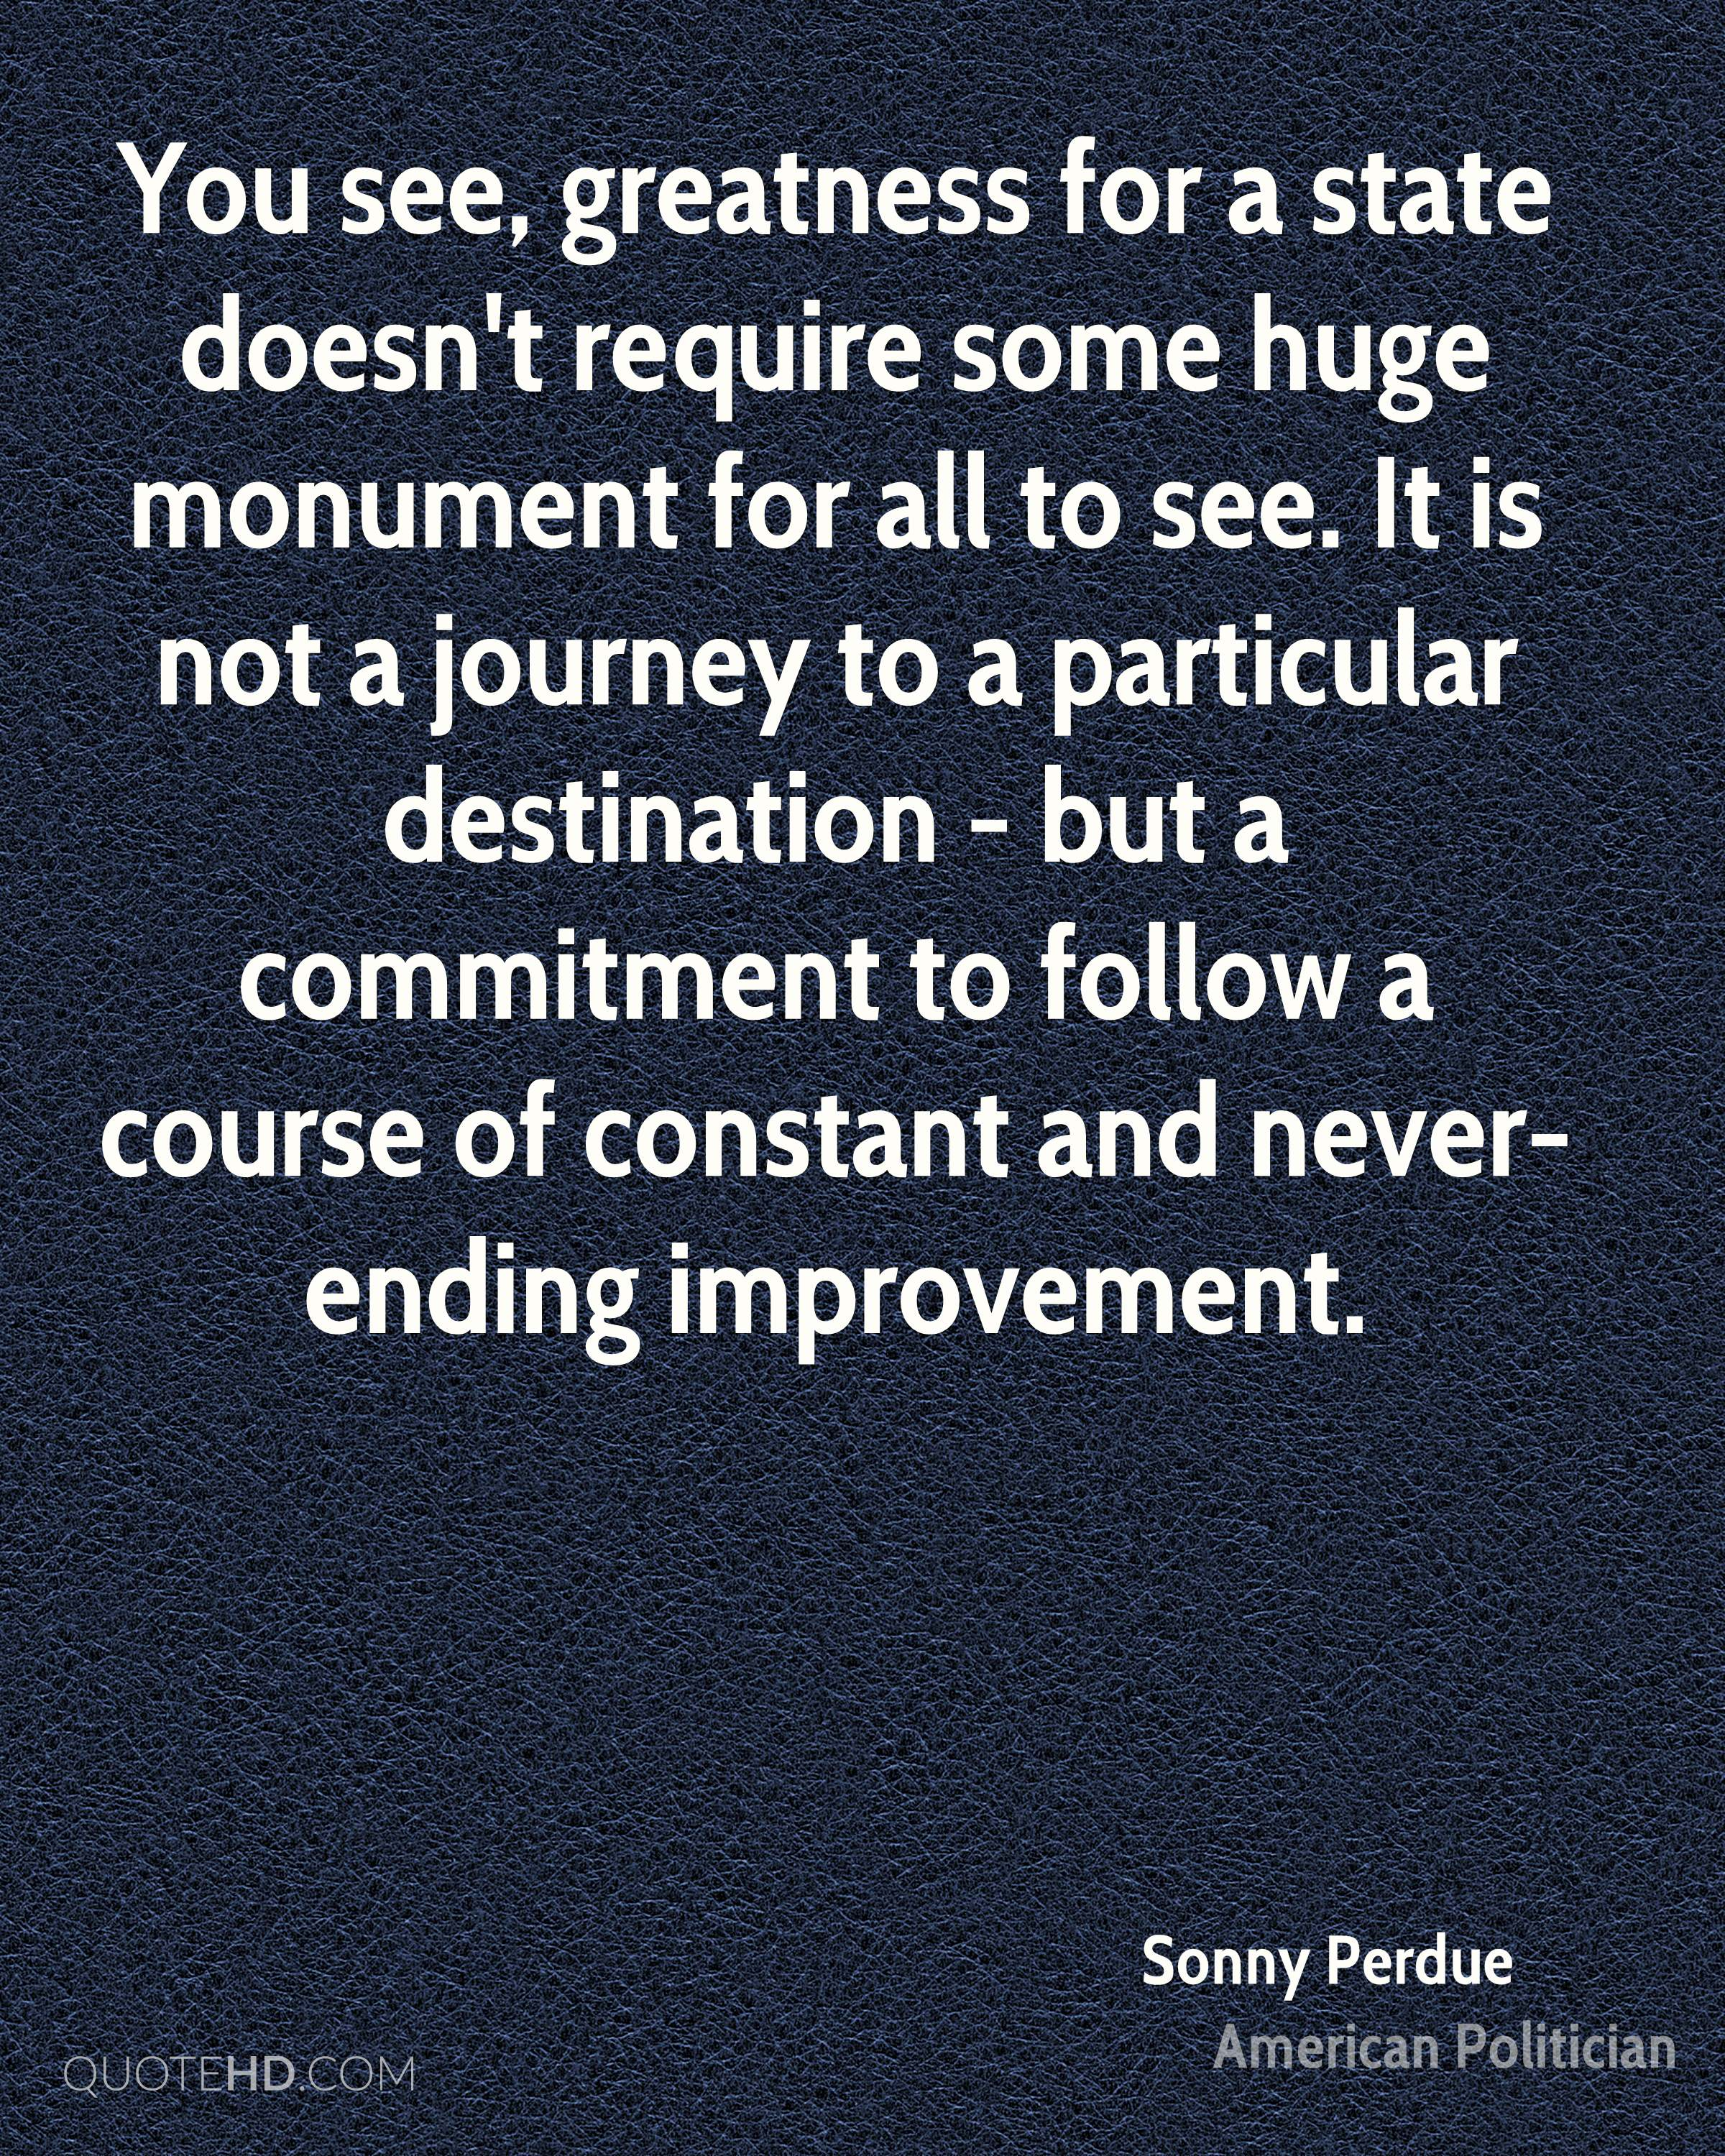 You see, greatness for a state doesn't require some huge monument for all to see. It is not a journey to a particular destination - but a commitment to follow a course of constant and never-ending improvement.